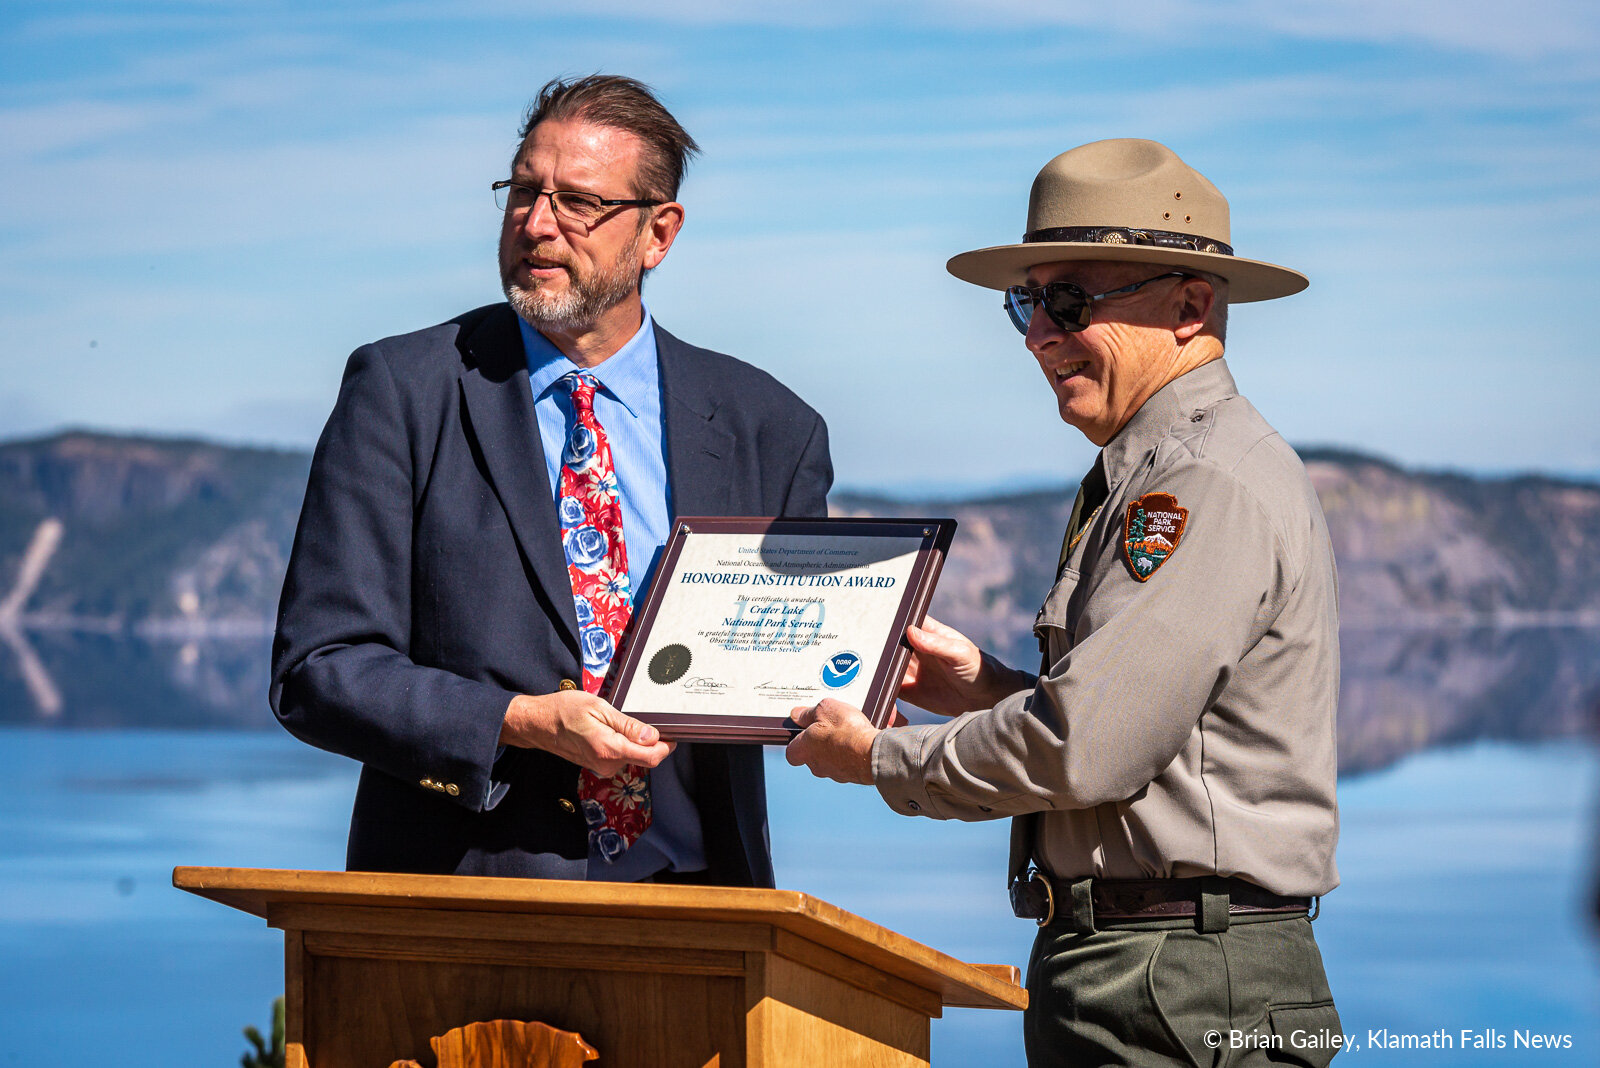 Crater Lake National Park Superintendent Craig Ackerman receives an Honored Institution Award from the National Weather Service on behalf of Crater Lake NP for 100-years of weather observations within the park. October 7, 2019 (Image: Brian Gailey / Klamath Falls News)